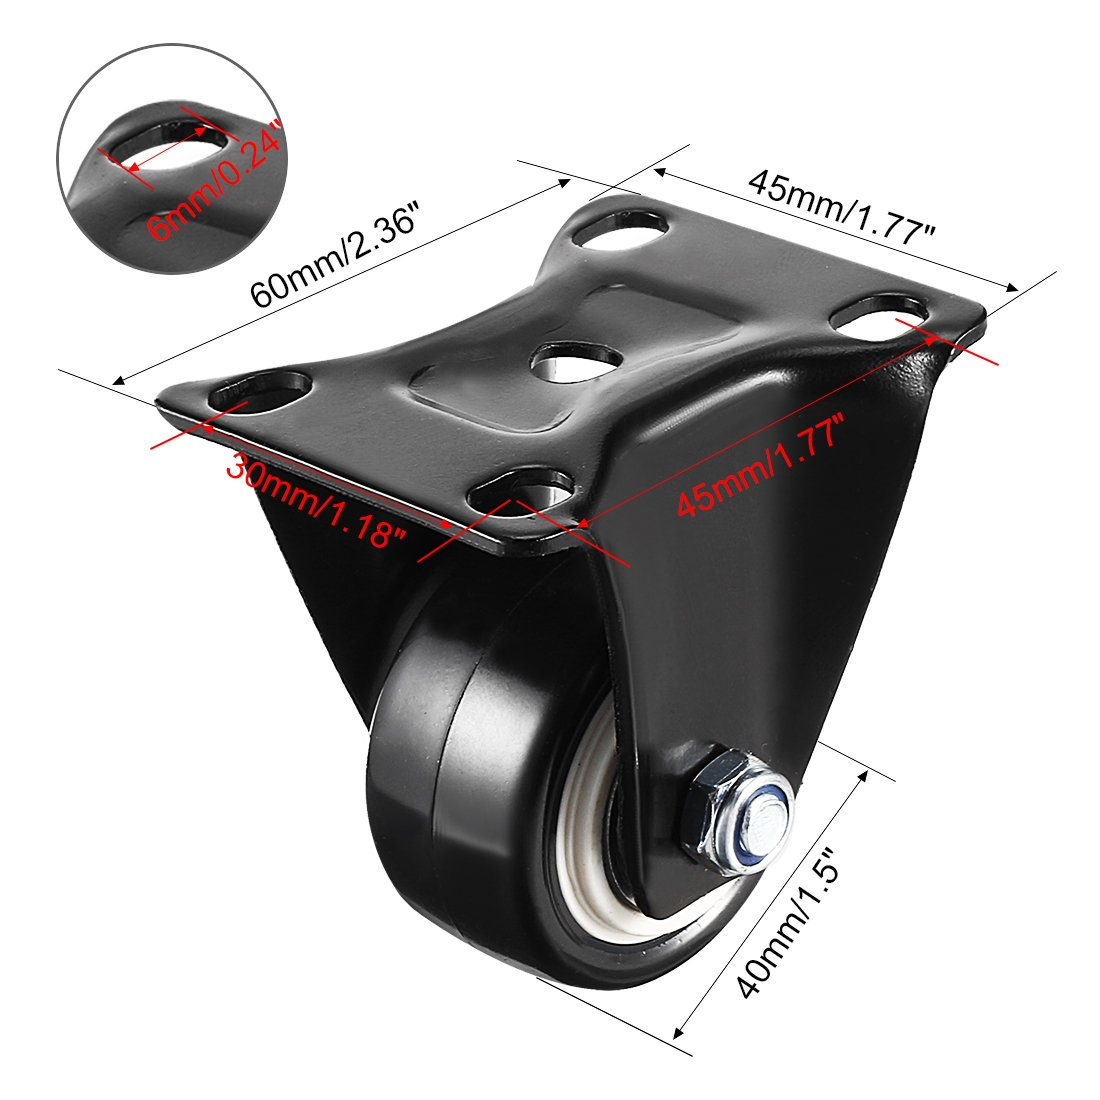 Pack of 2 110lb Capacity Each Wheel uxcell 1.5 Inch Fixed Caster Wheels PU Top Plate Mounted Caster Wheel